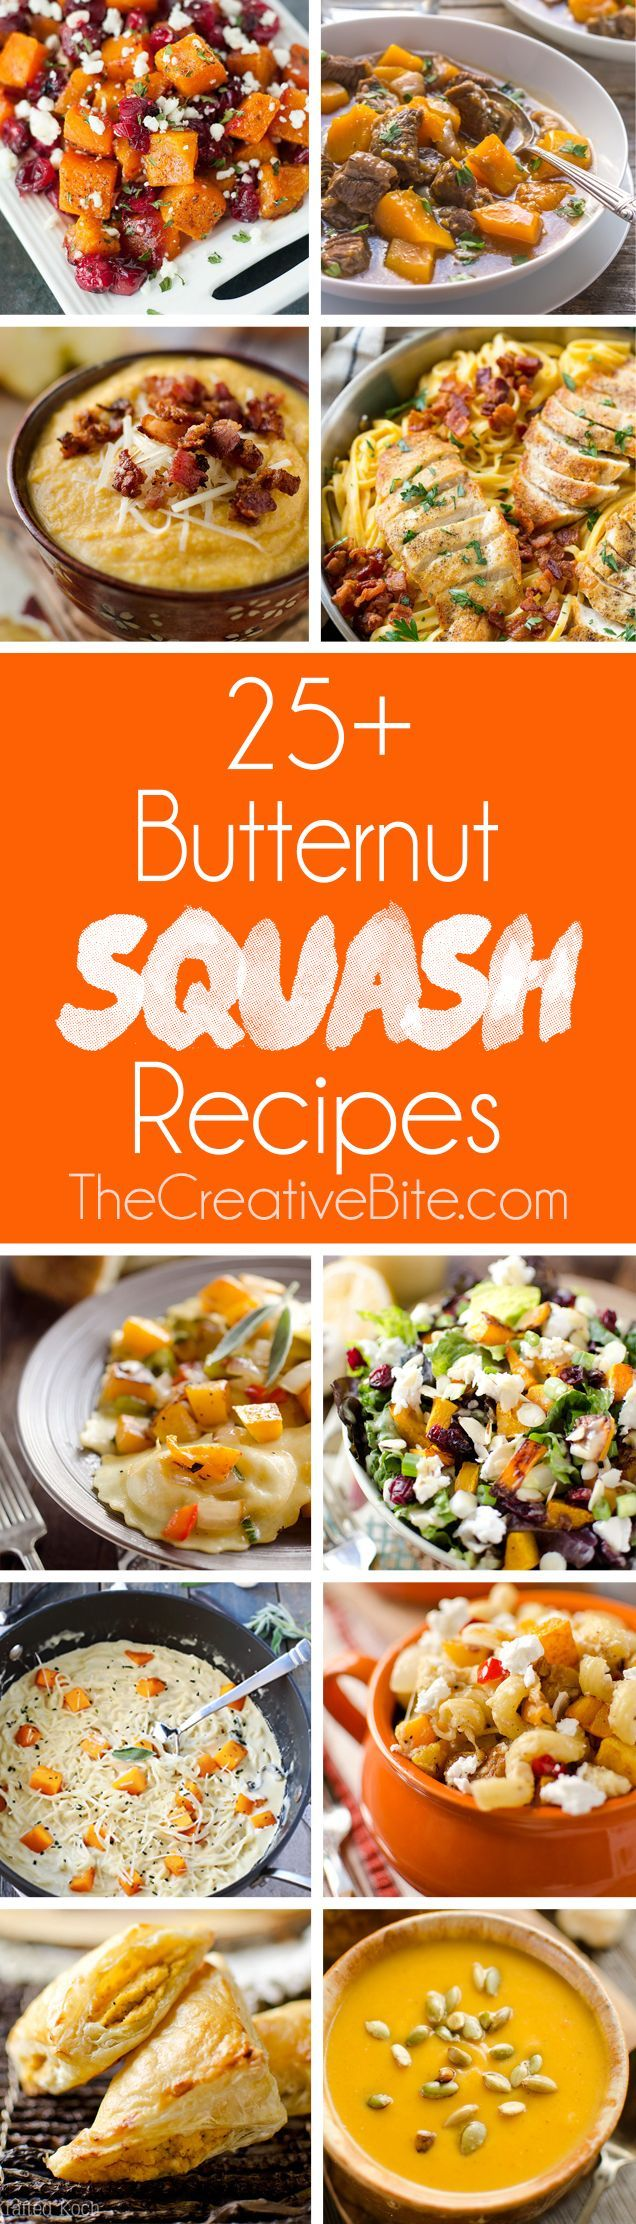 With over 25+ Butternut Squash Recipes, you are sure to find a dinner, side dish or dessert that you will love with this seasonal fall vegetable!